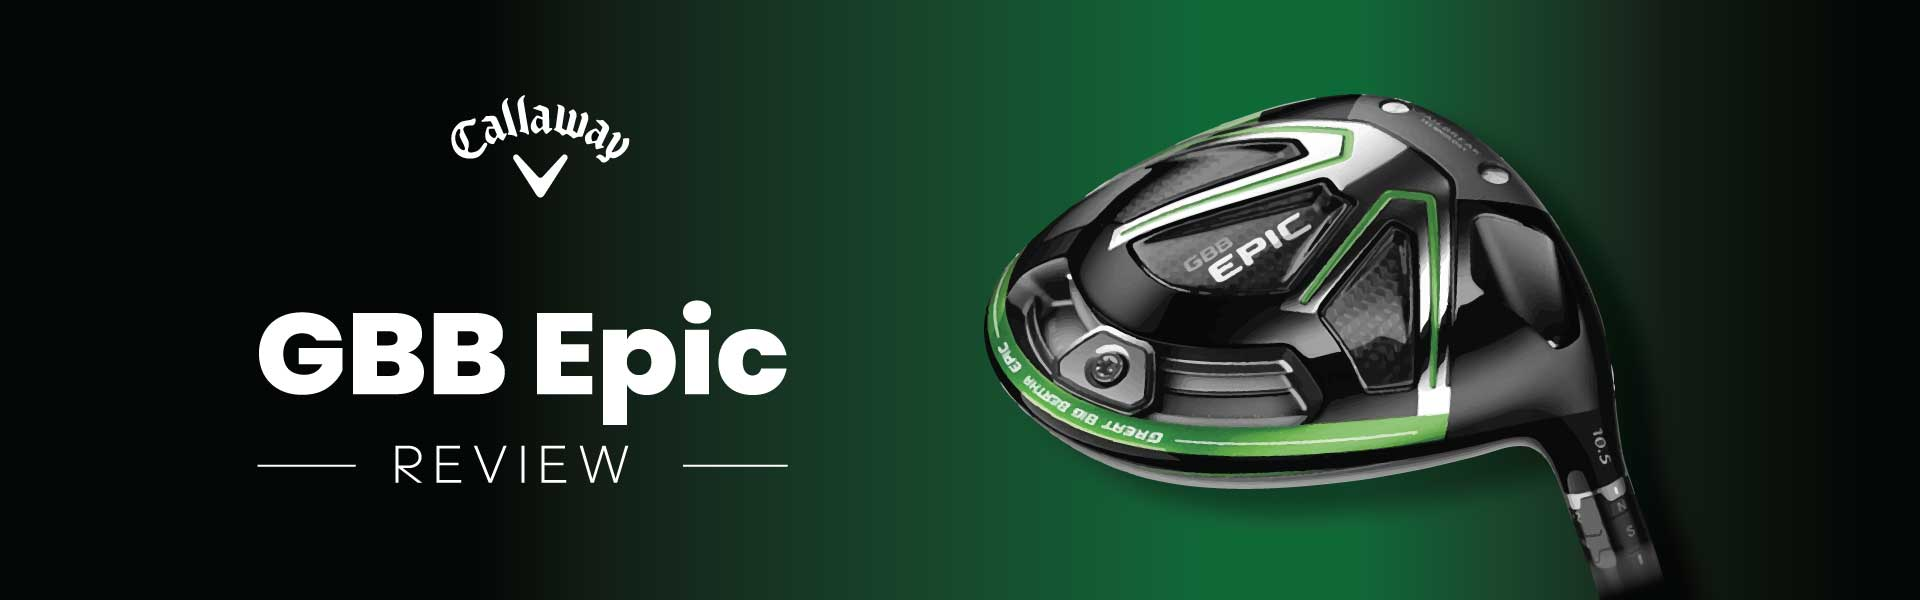 Review: Callaway GBB Epic Driver